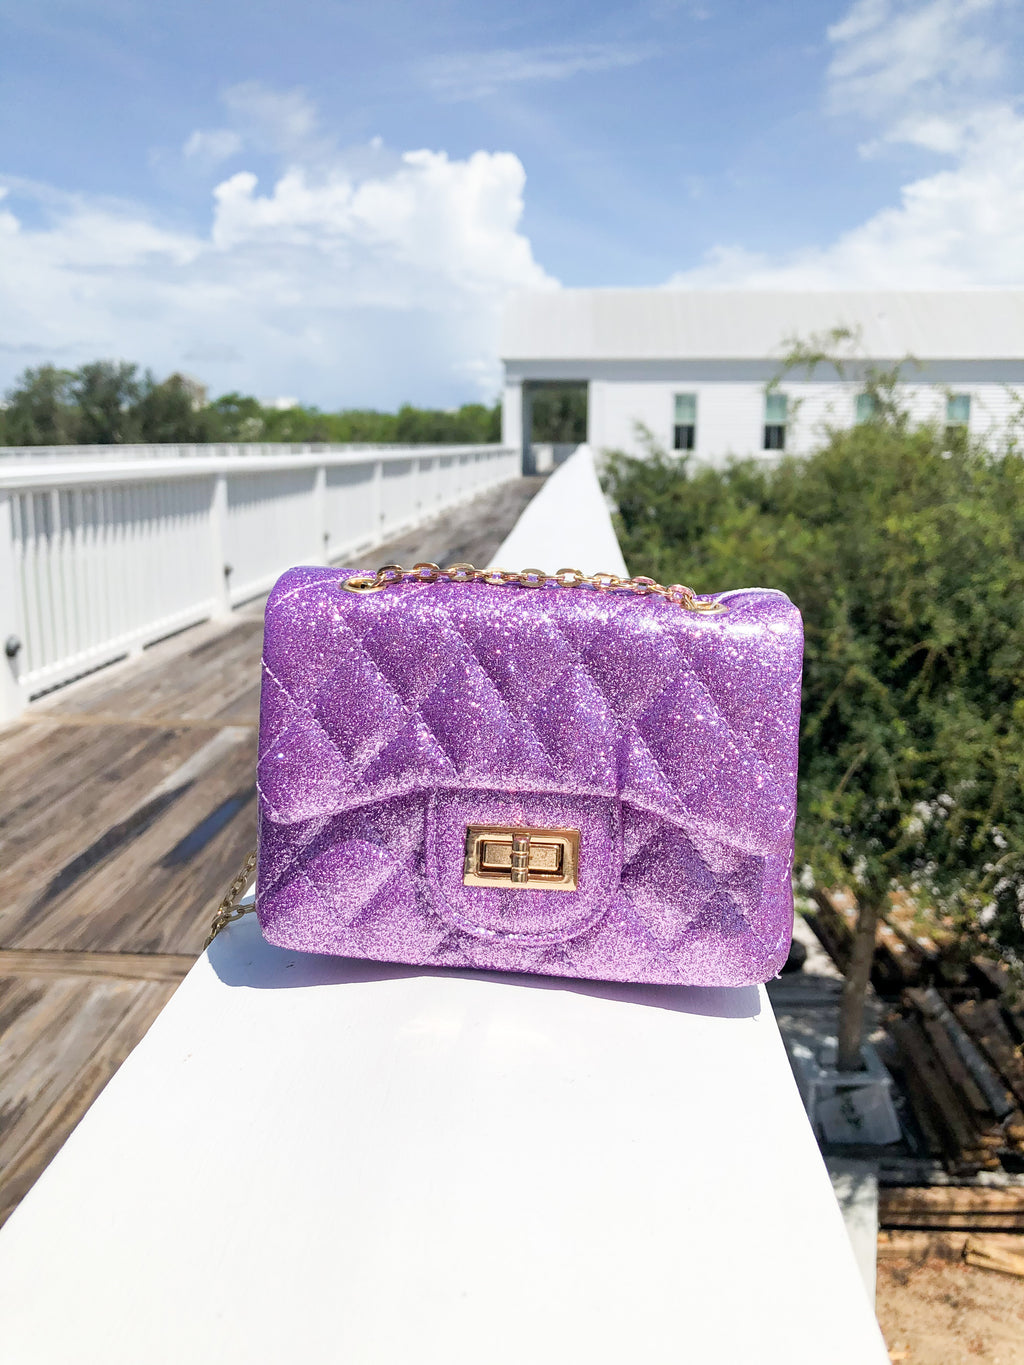 Chanel Style Bag - Purple Sparkle